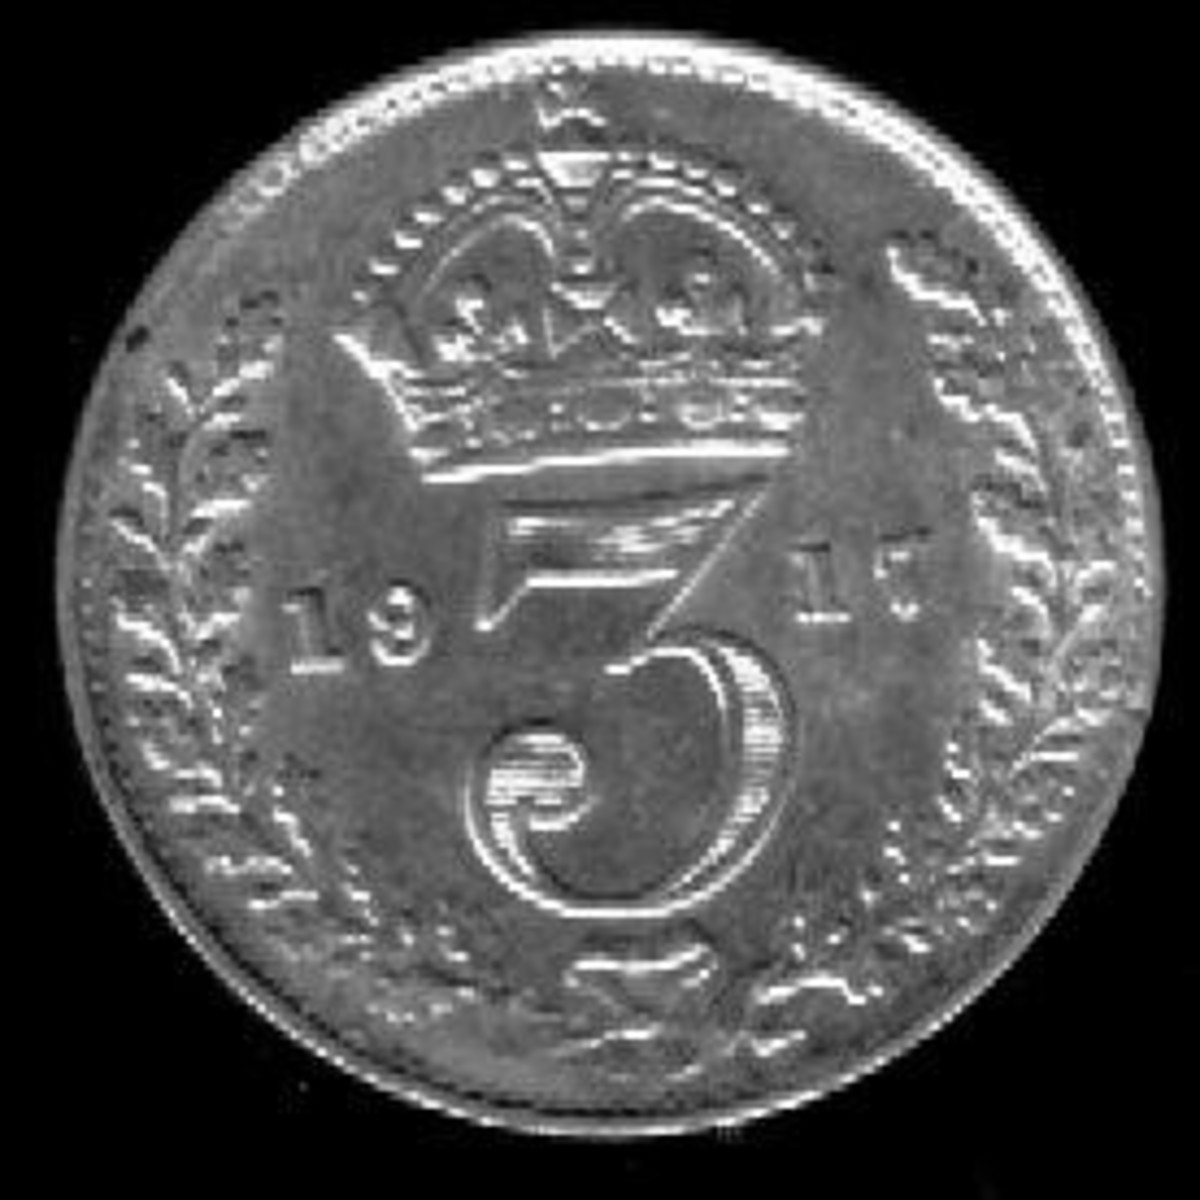 A silver British 3 pence coin